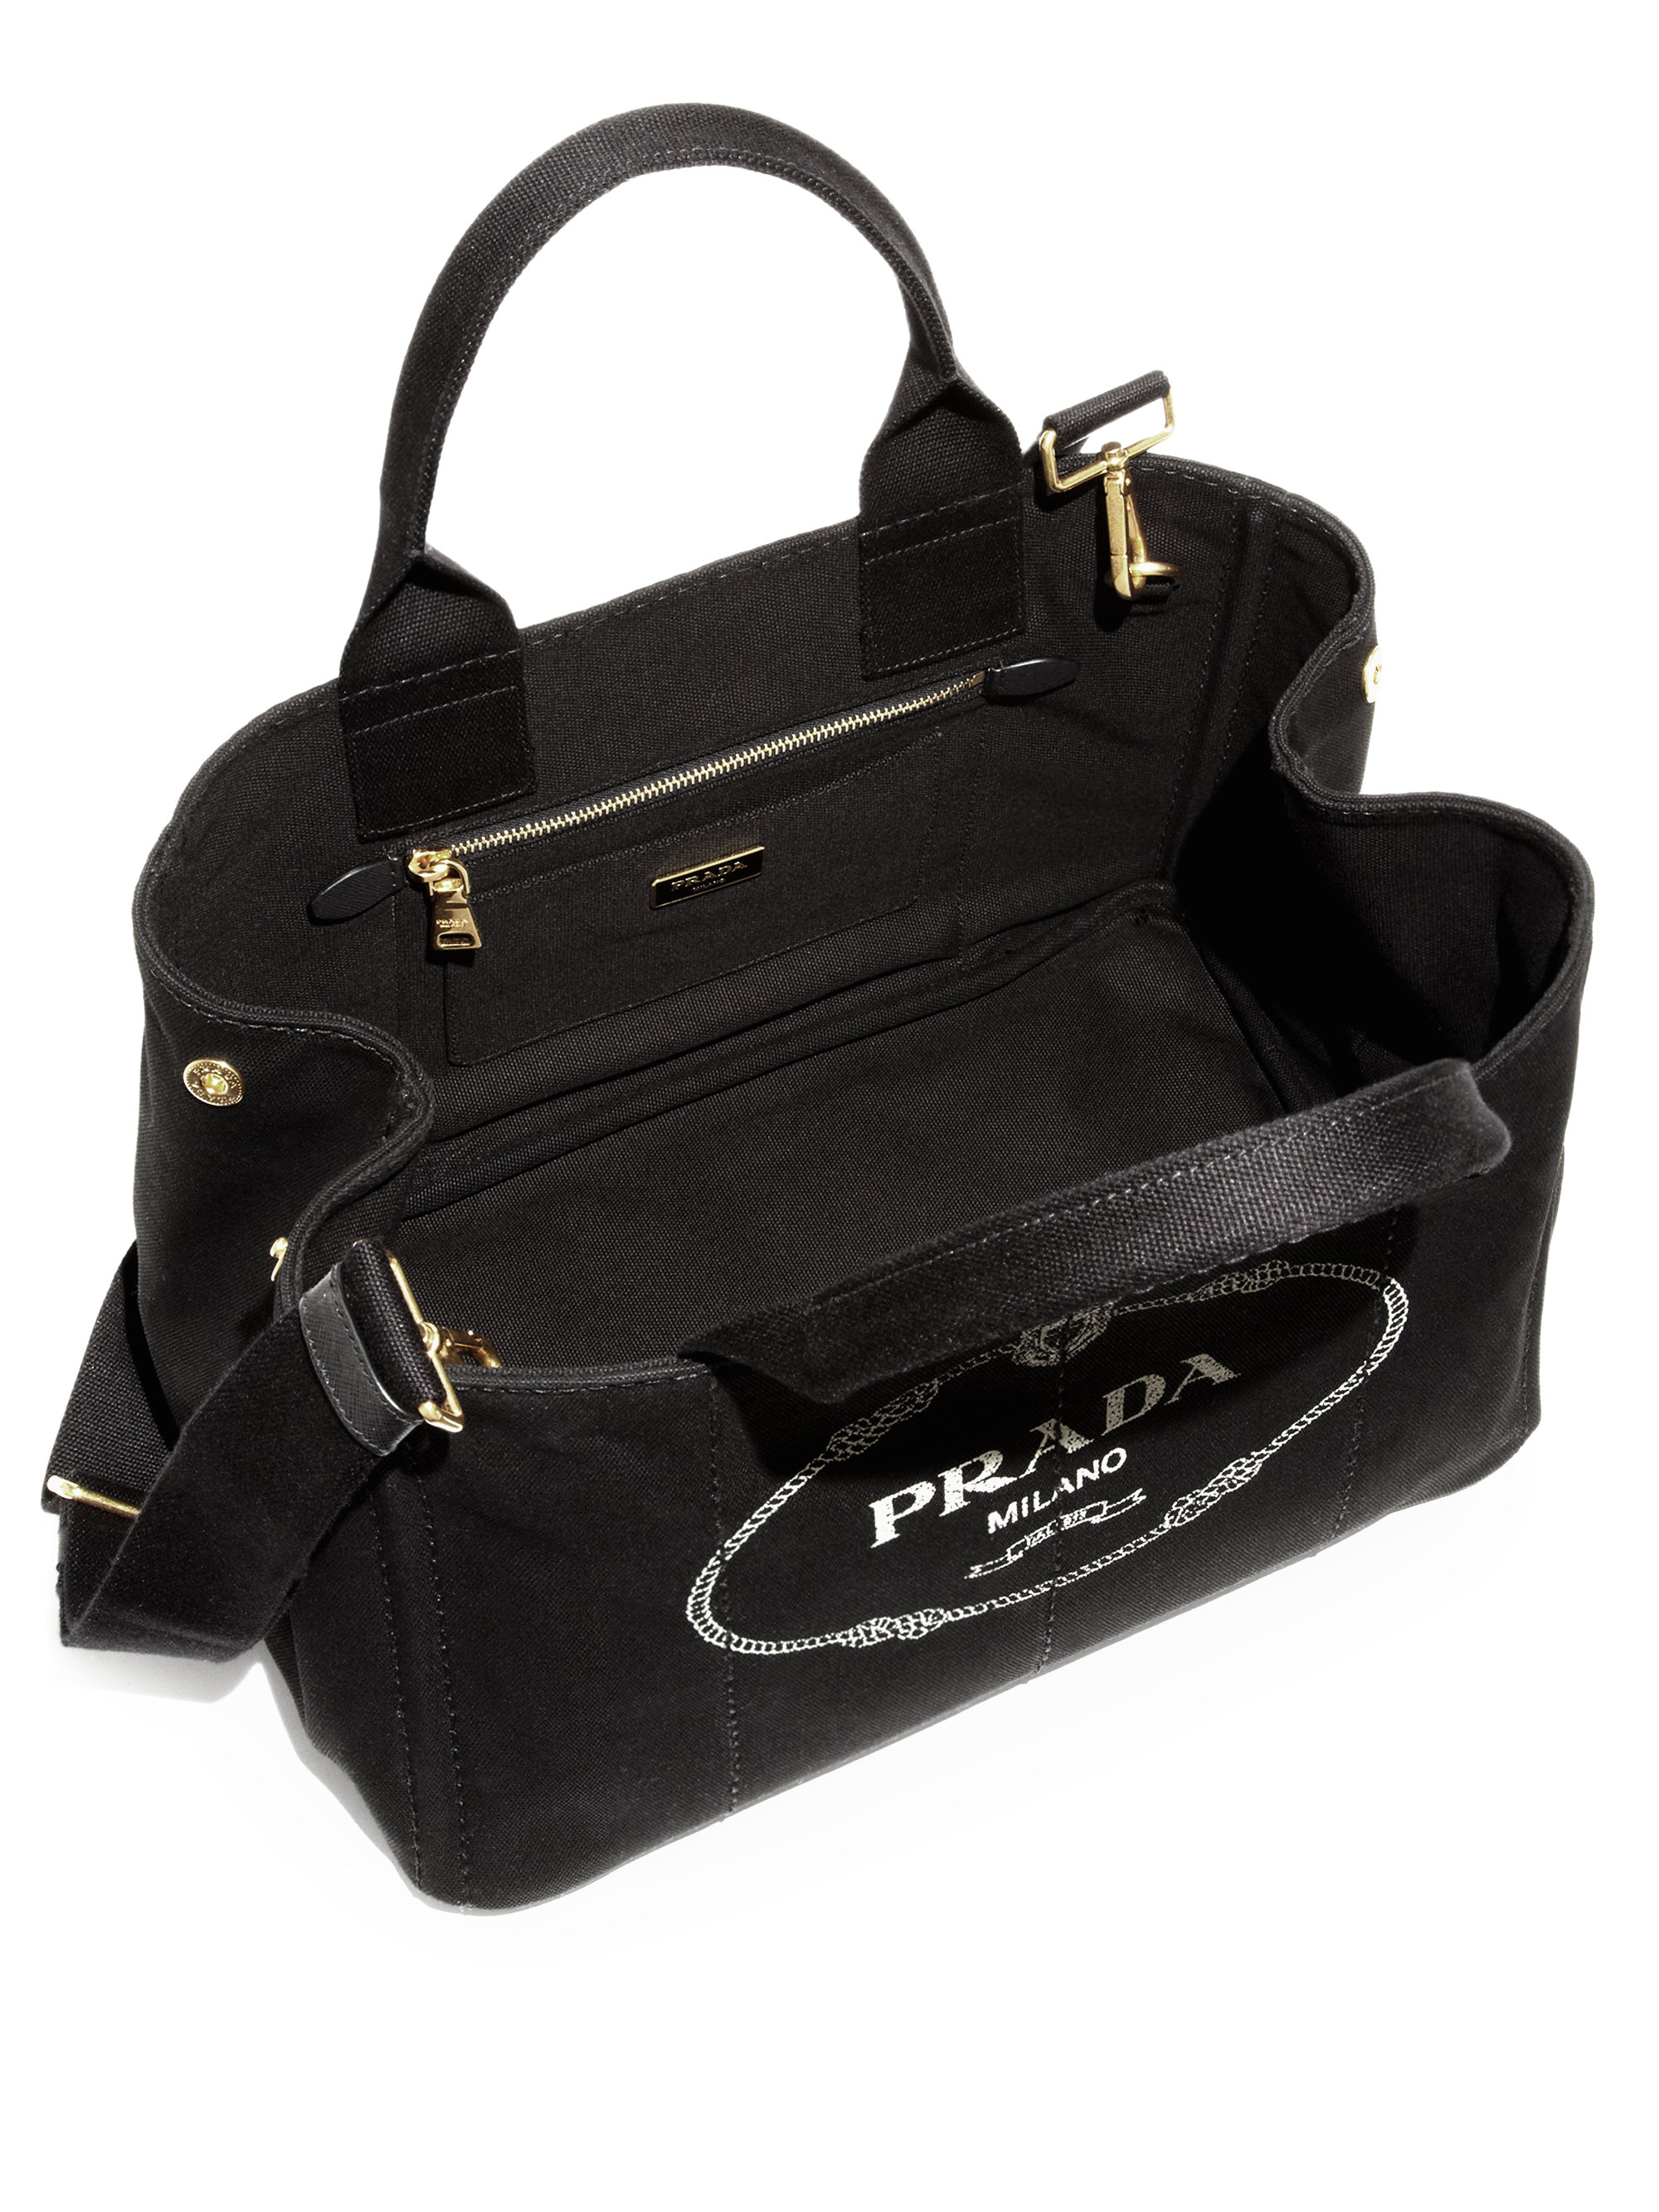 prada shoes quality - prada black canvas bag